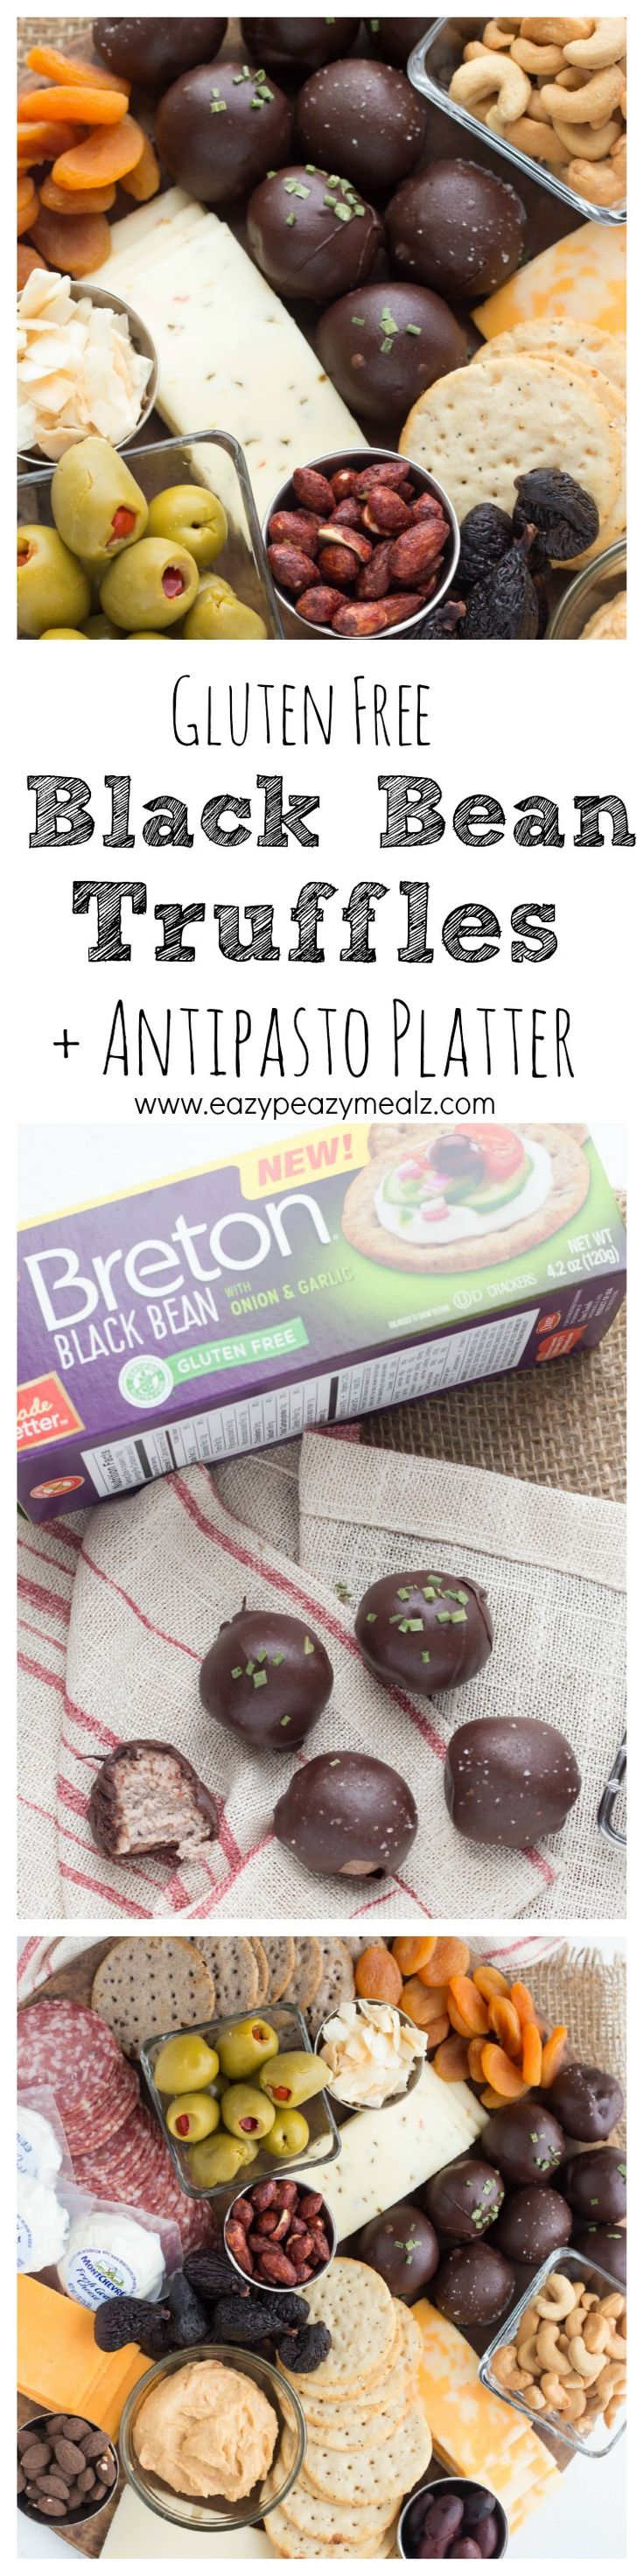 A savory black bean truffle made with gluten free Breton crackers; a unique and fun way to spice up an antipasto platter. #BretonGlutenFree #ad - Eazy Peazy Mealz